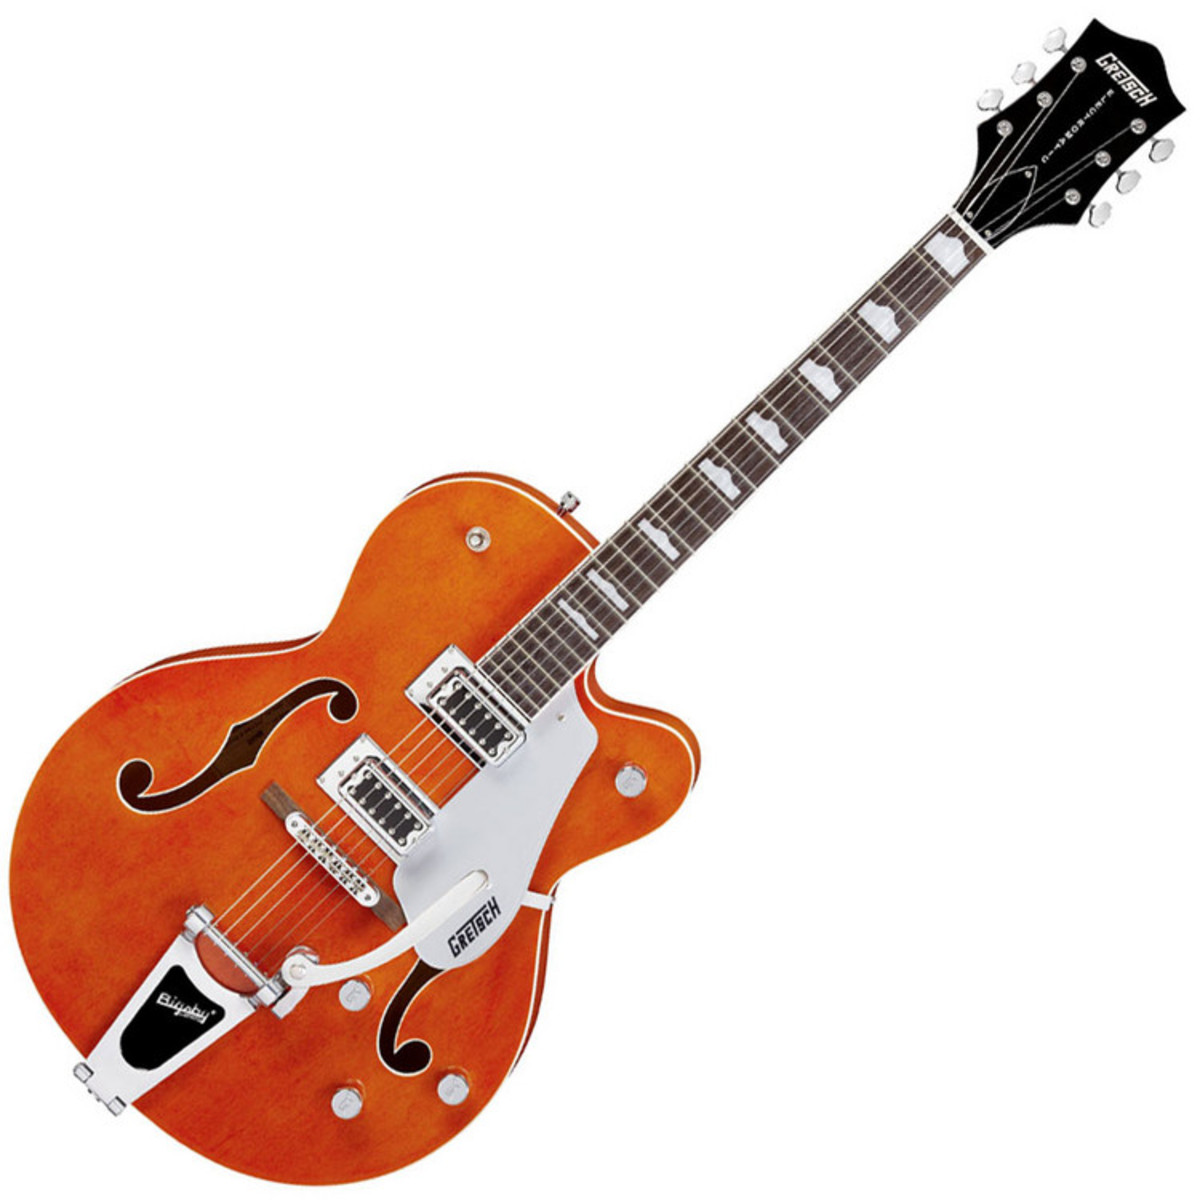 gretsch g5420t electromatic hollow body electric guitar orange at gear4music. Black Bedroom Furniture Sets. Home Design Ideas